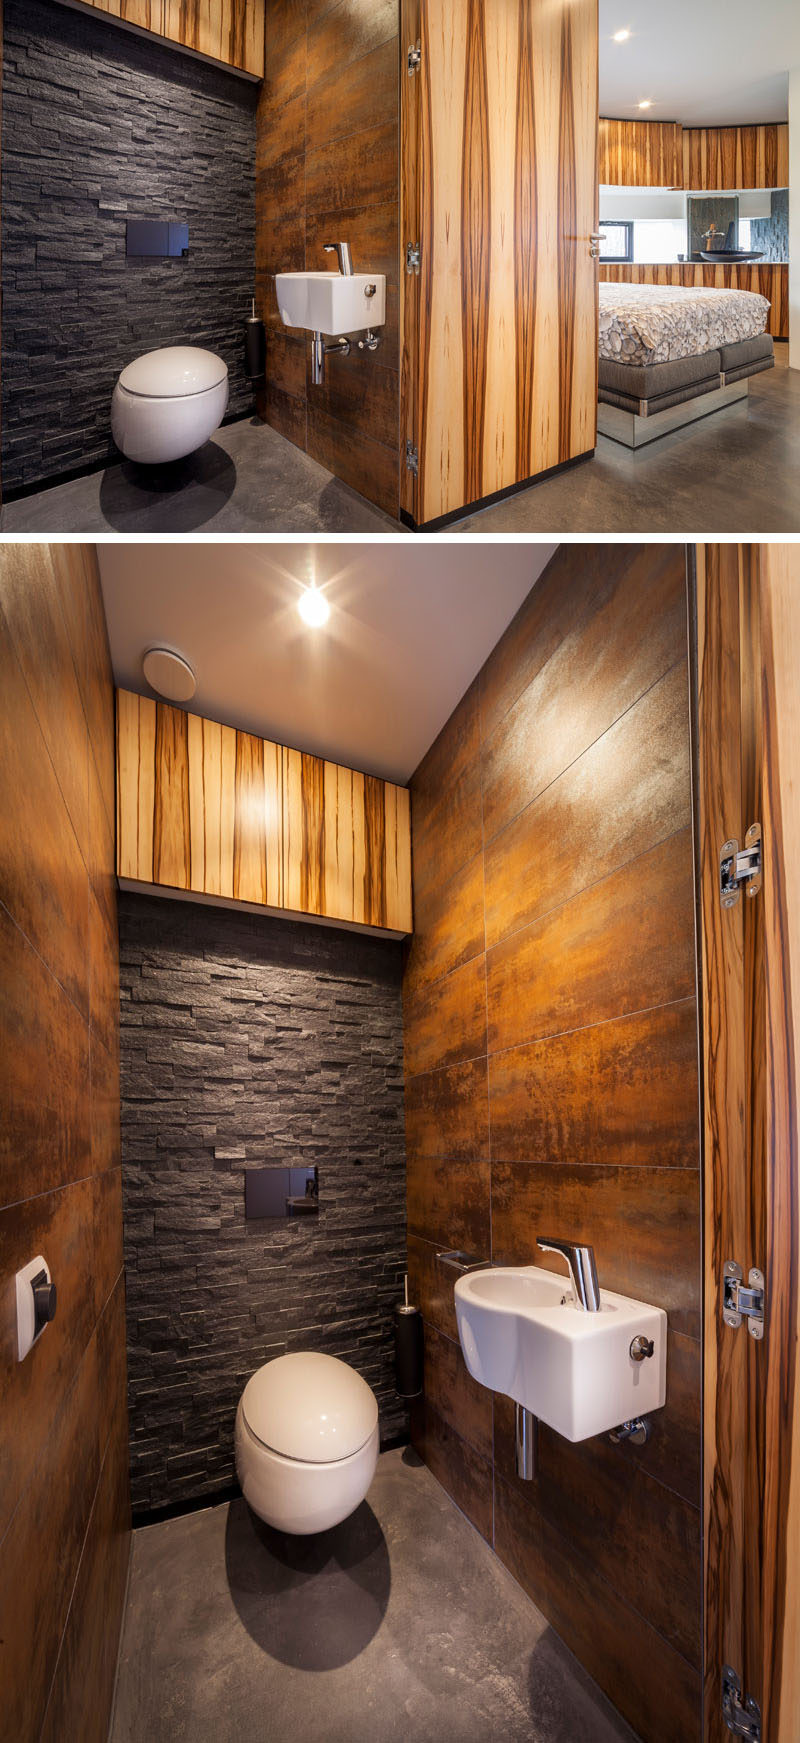 This small bathroom features metal, wood and stone walls, and a door made from the same wood material used to cover the walls of the home allows the bathroom to disappear from sight when the door is closed.